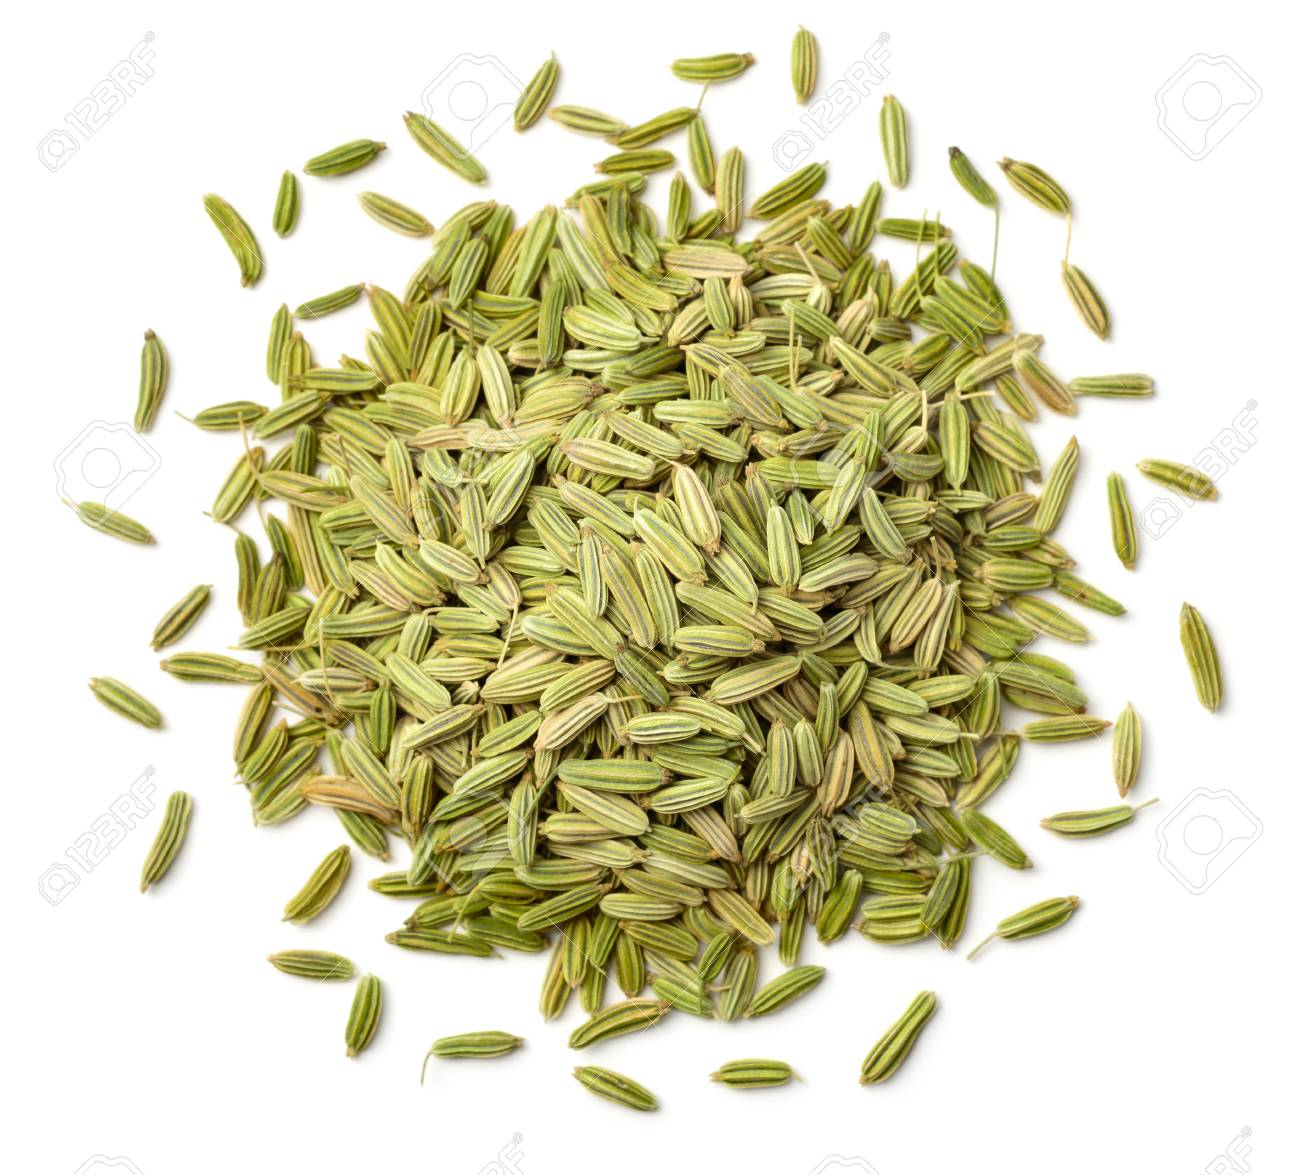 dried fennel seeds isolated on white - 97687794